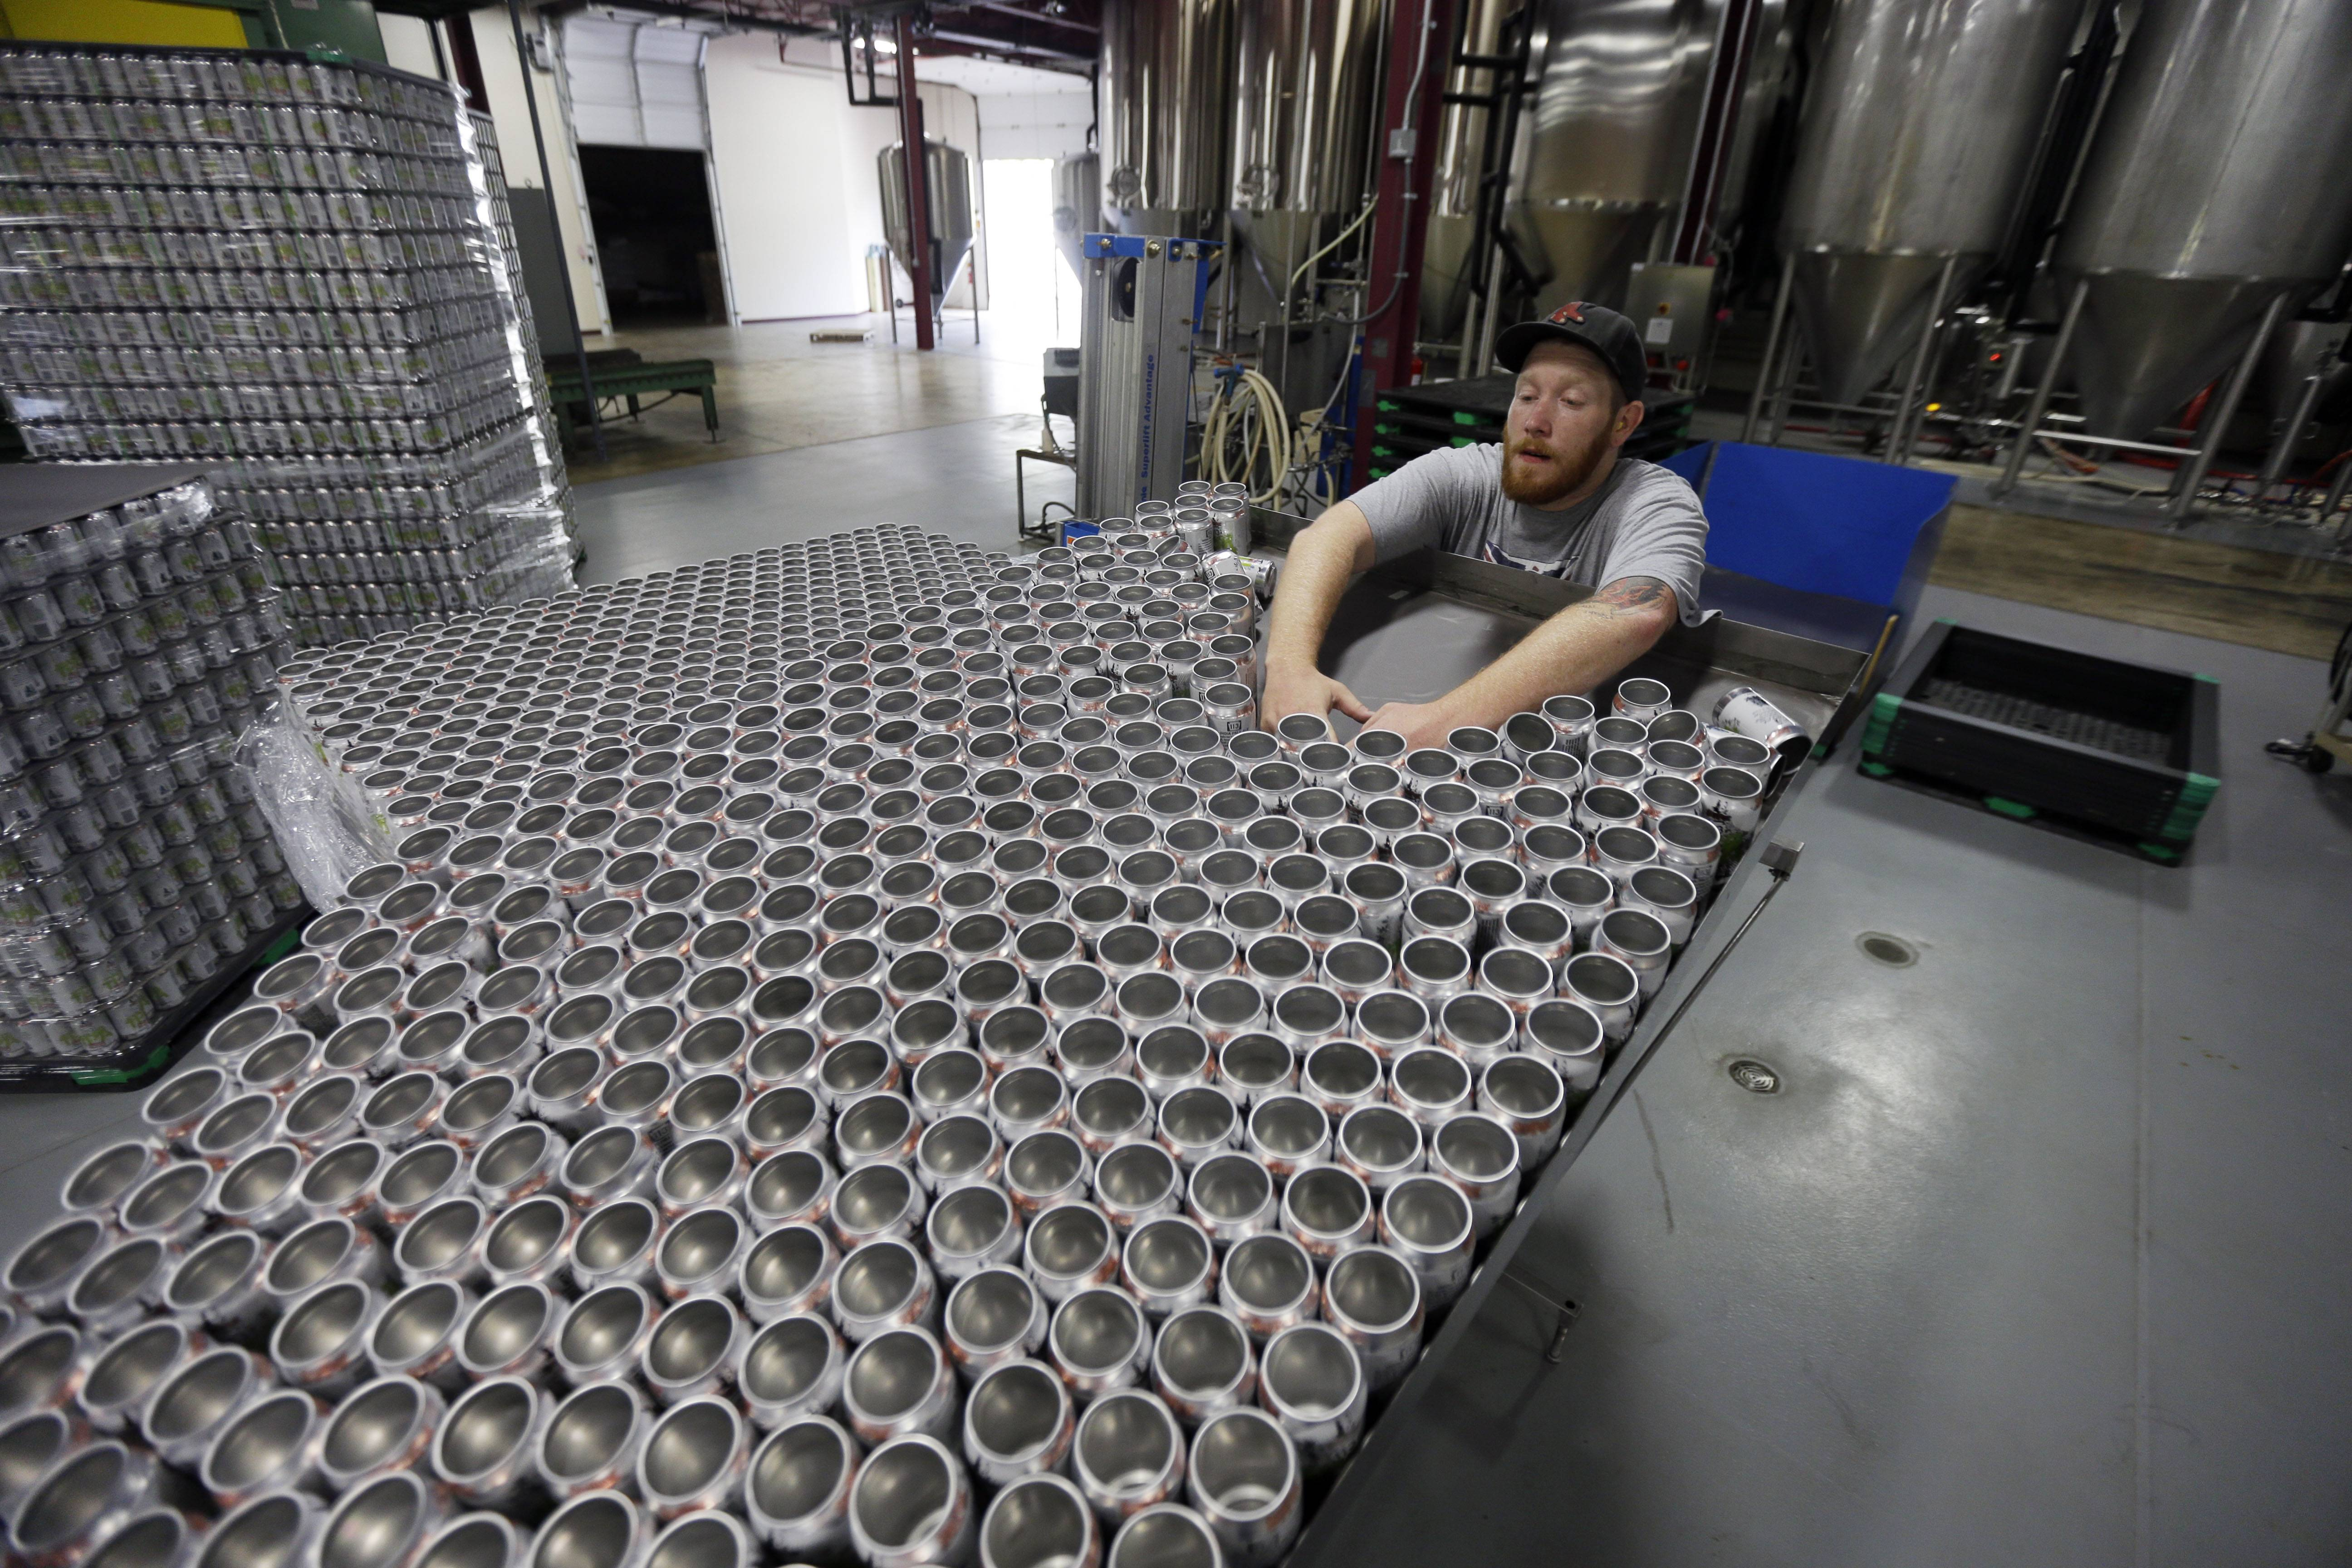 A worker loads empty cans onto the assembly line the Sly Fox Brewing Company in Pottstown, Pa. U.S. wholesale stockpiles rose in May at the weakest pace in five months as companies kept their supplies in line with slower sales.  Wholesale stockpiles grew 0.5 percent in May,